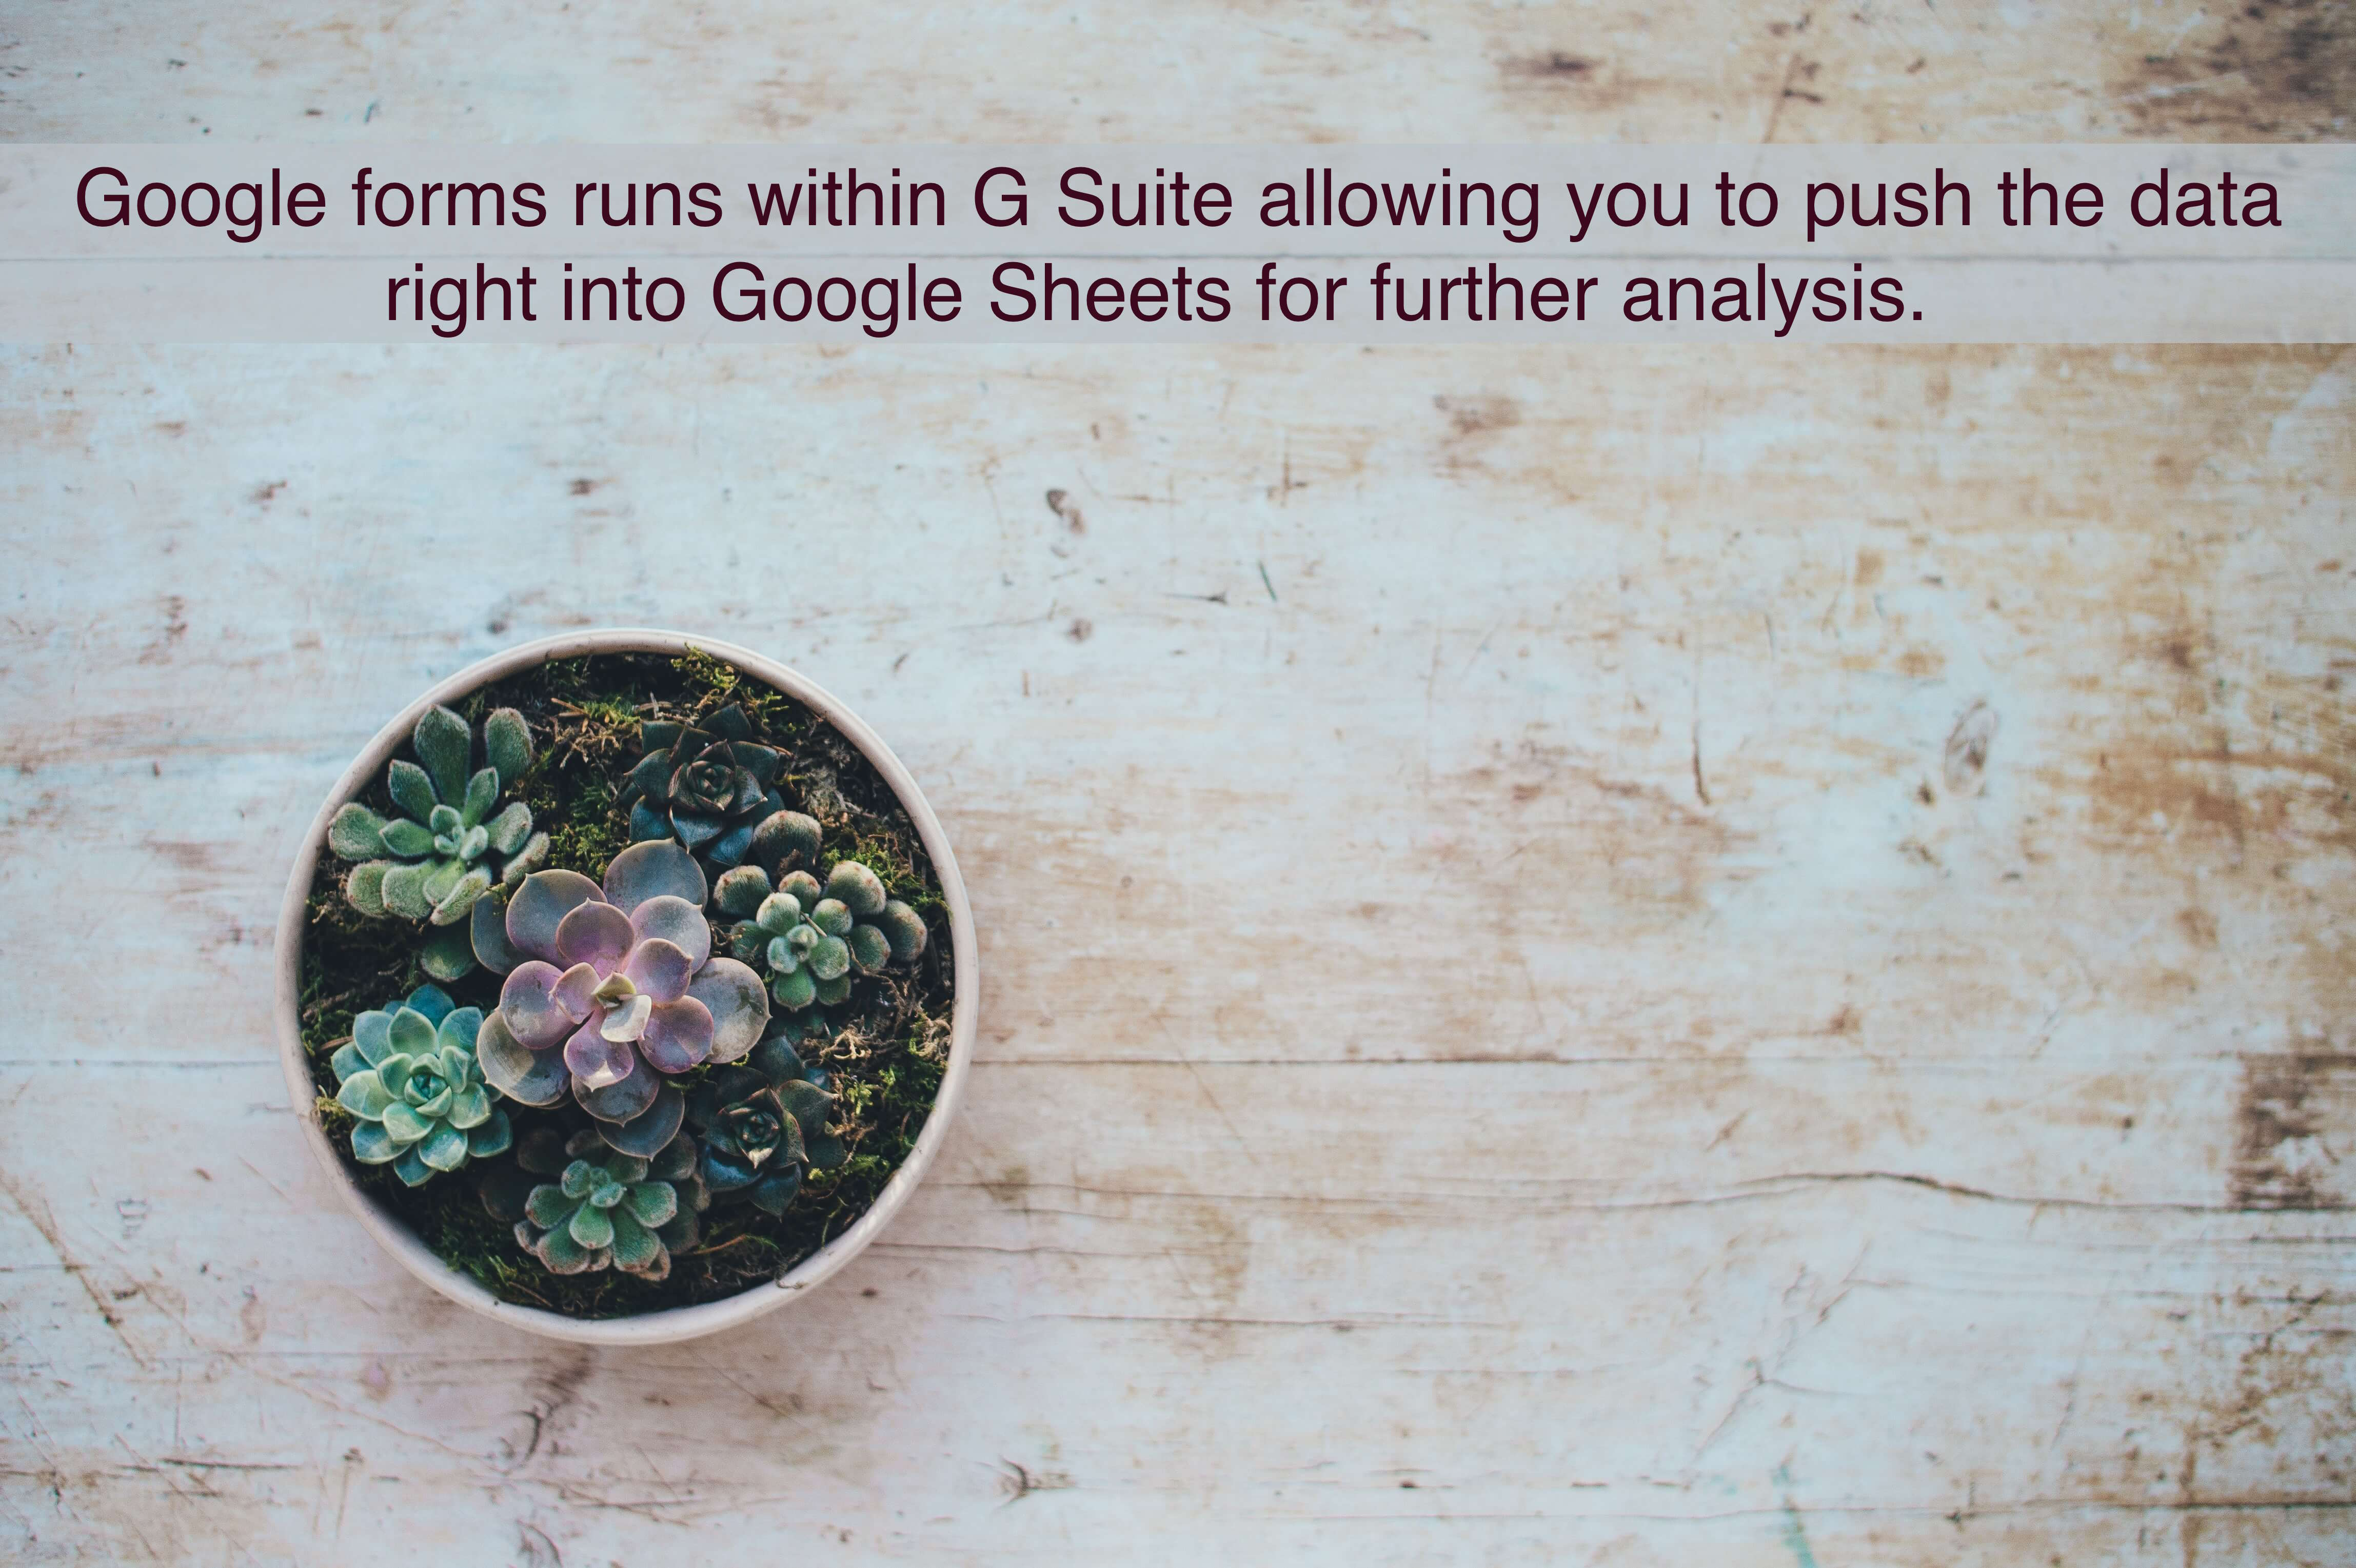 Google forms runs within G Suite allowing you to push the data right into Google Sheets for further analysis.